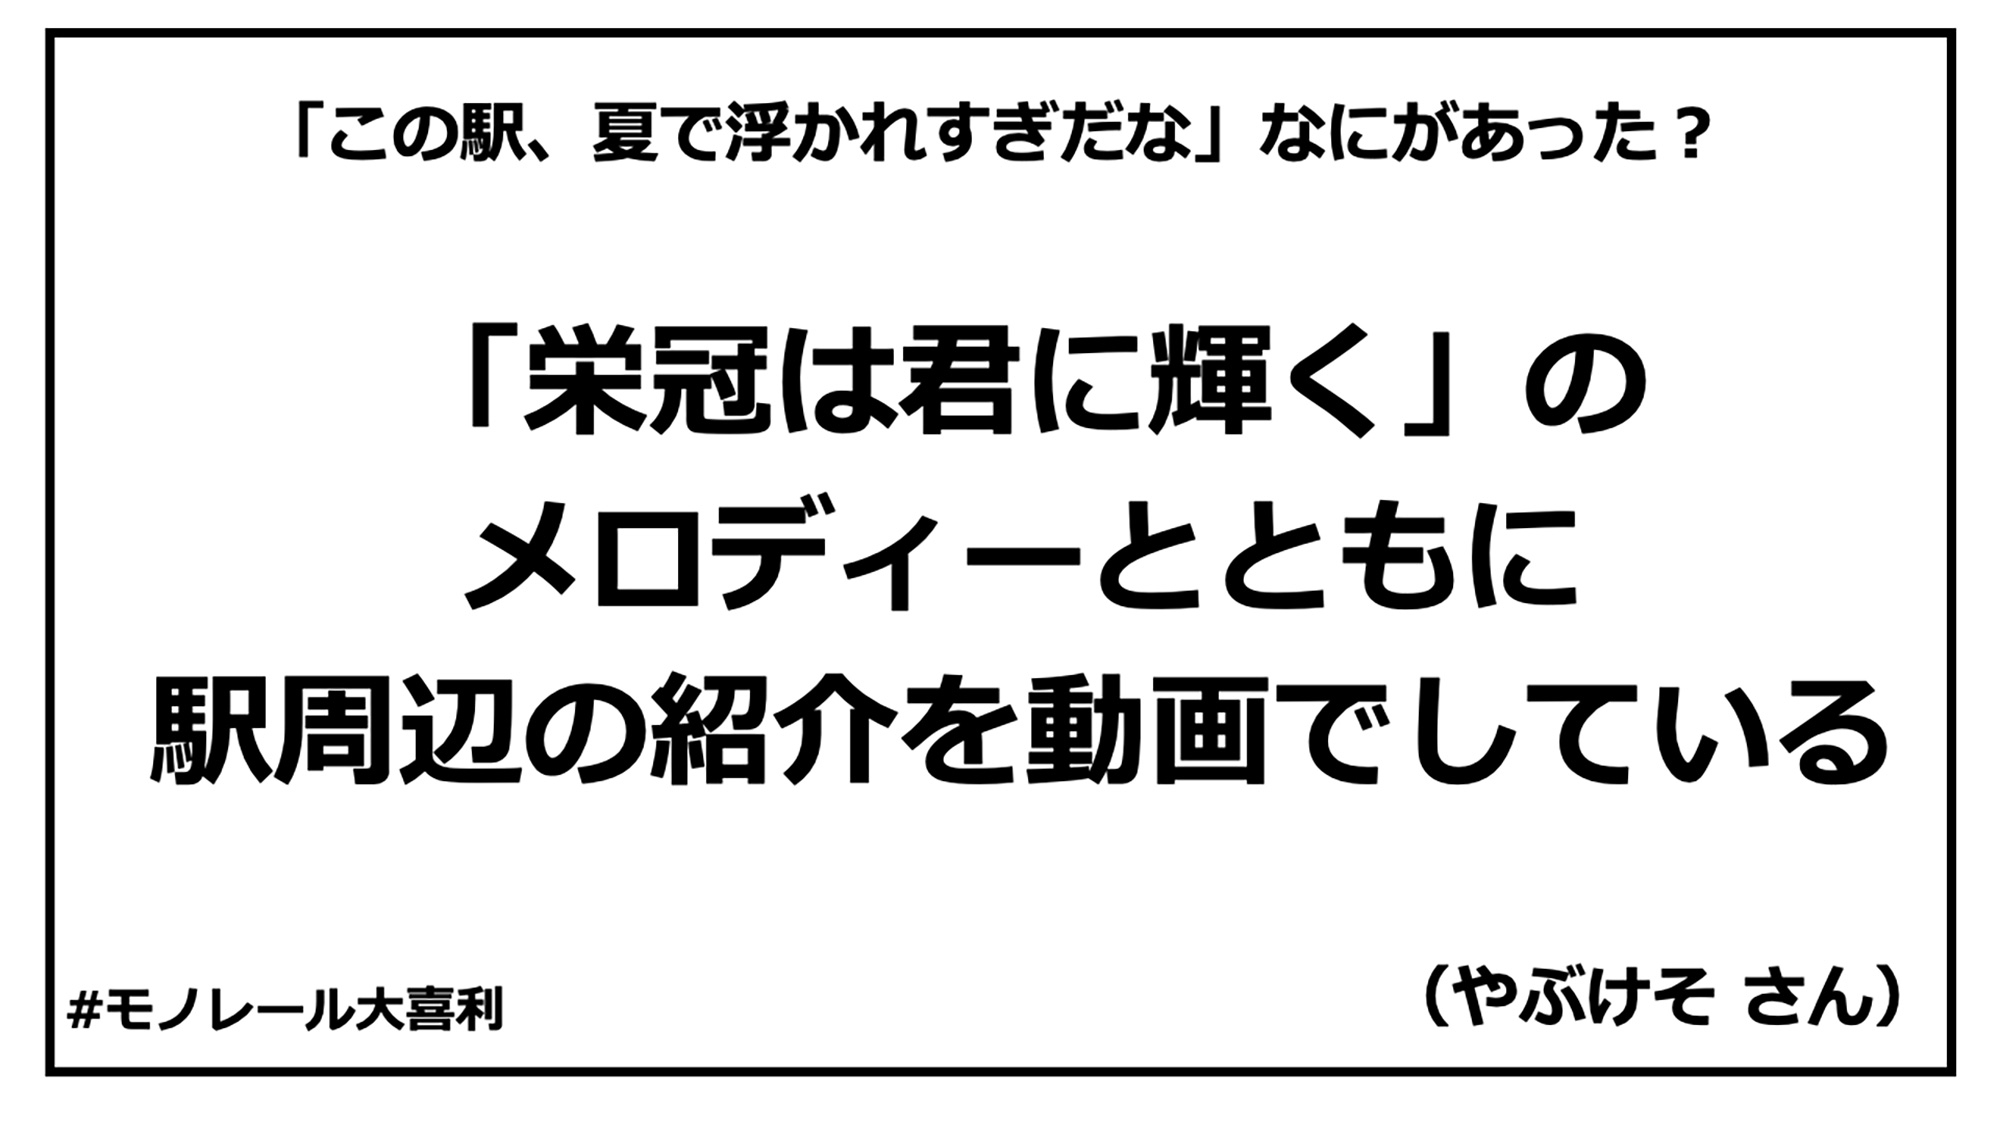 ogiri_answer_26_10.jpg